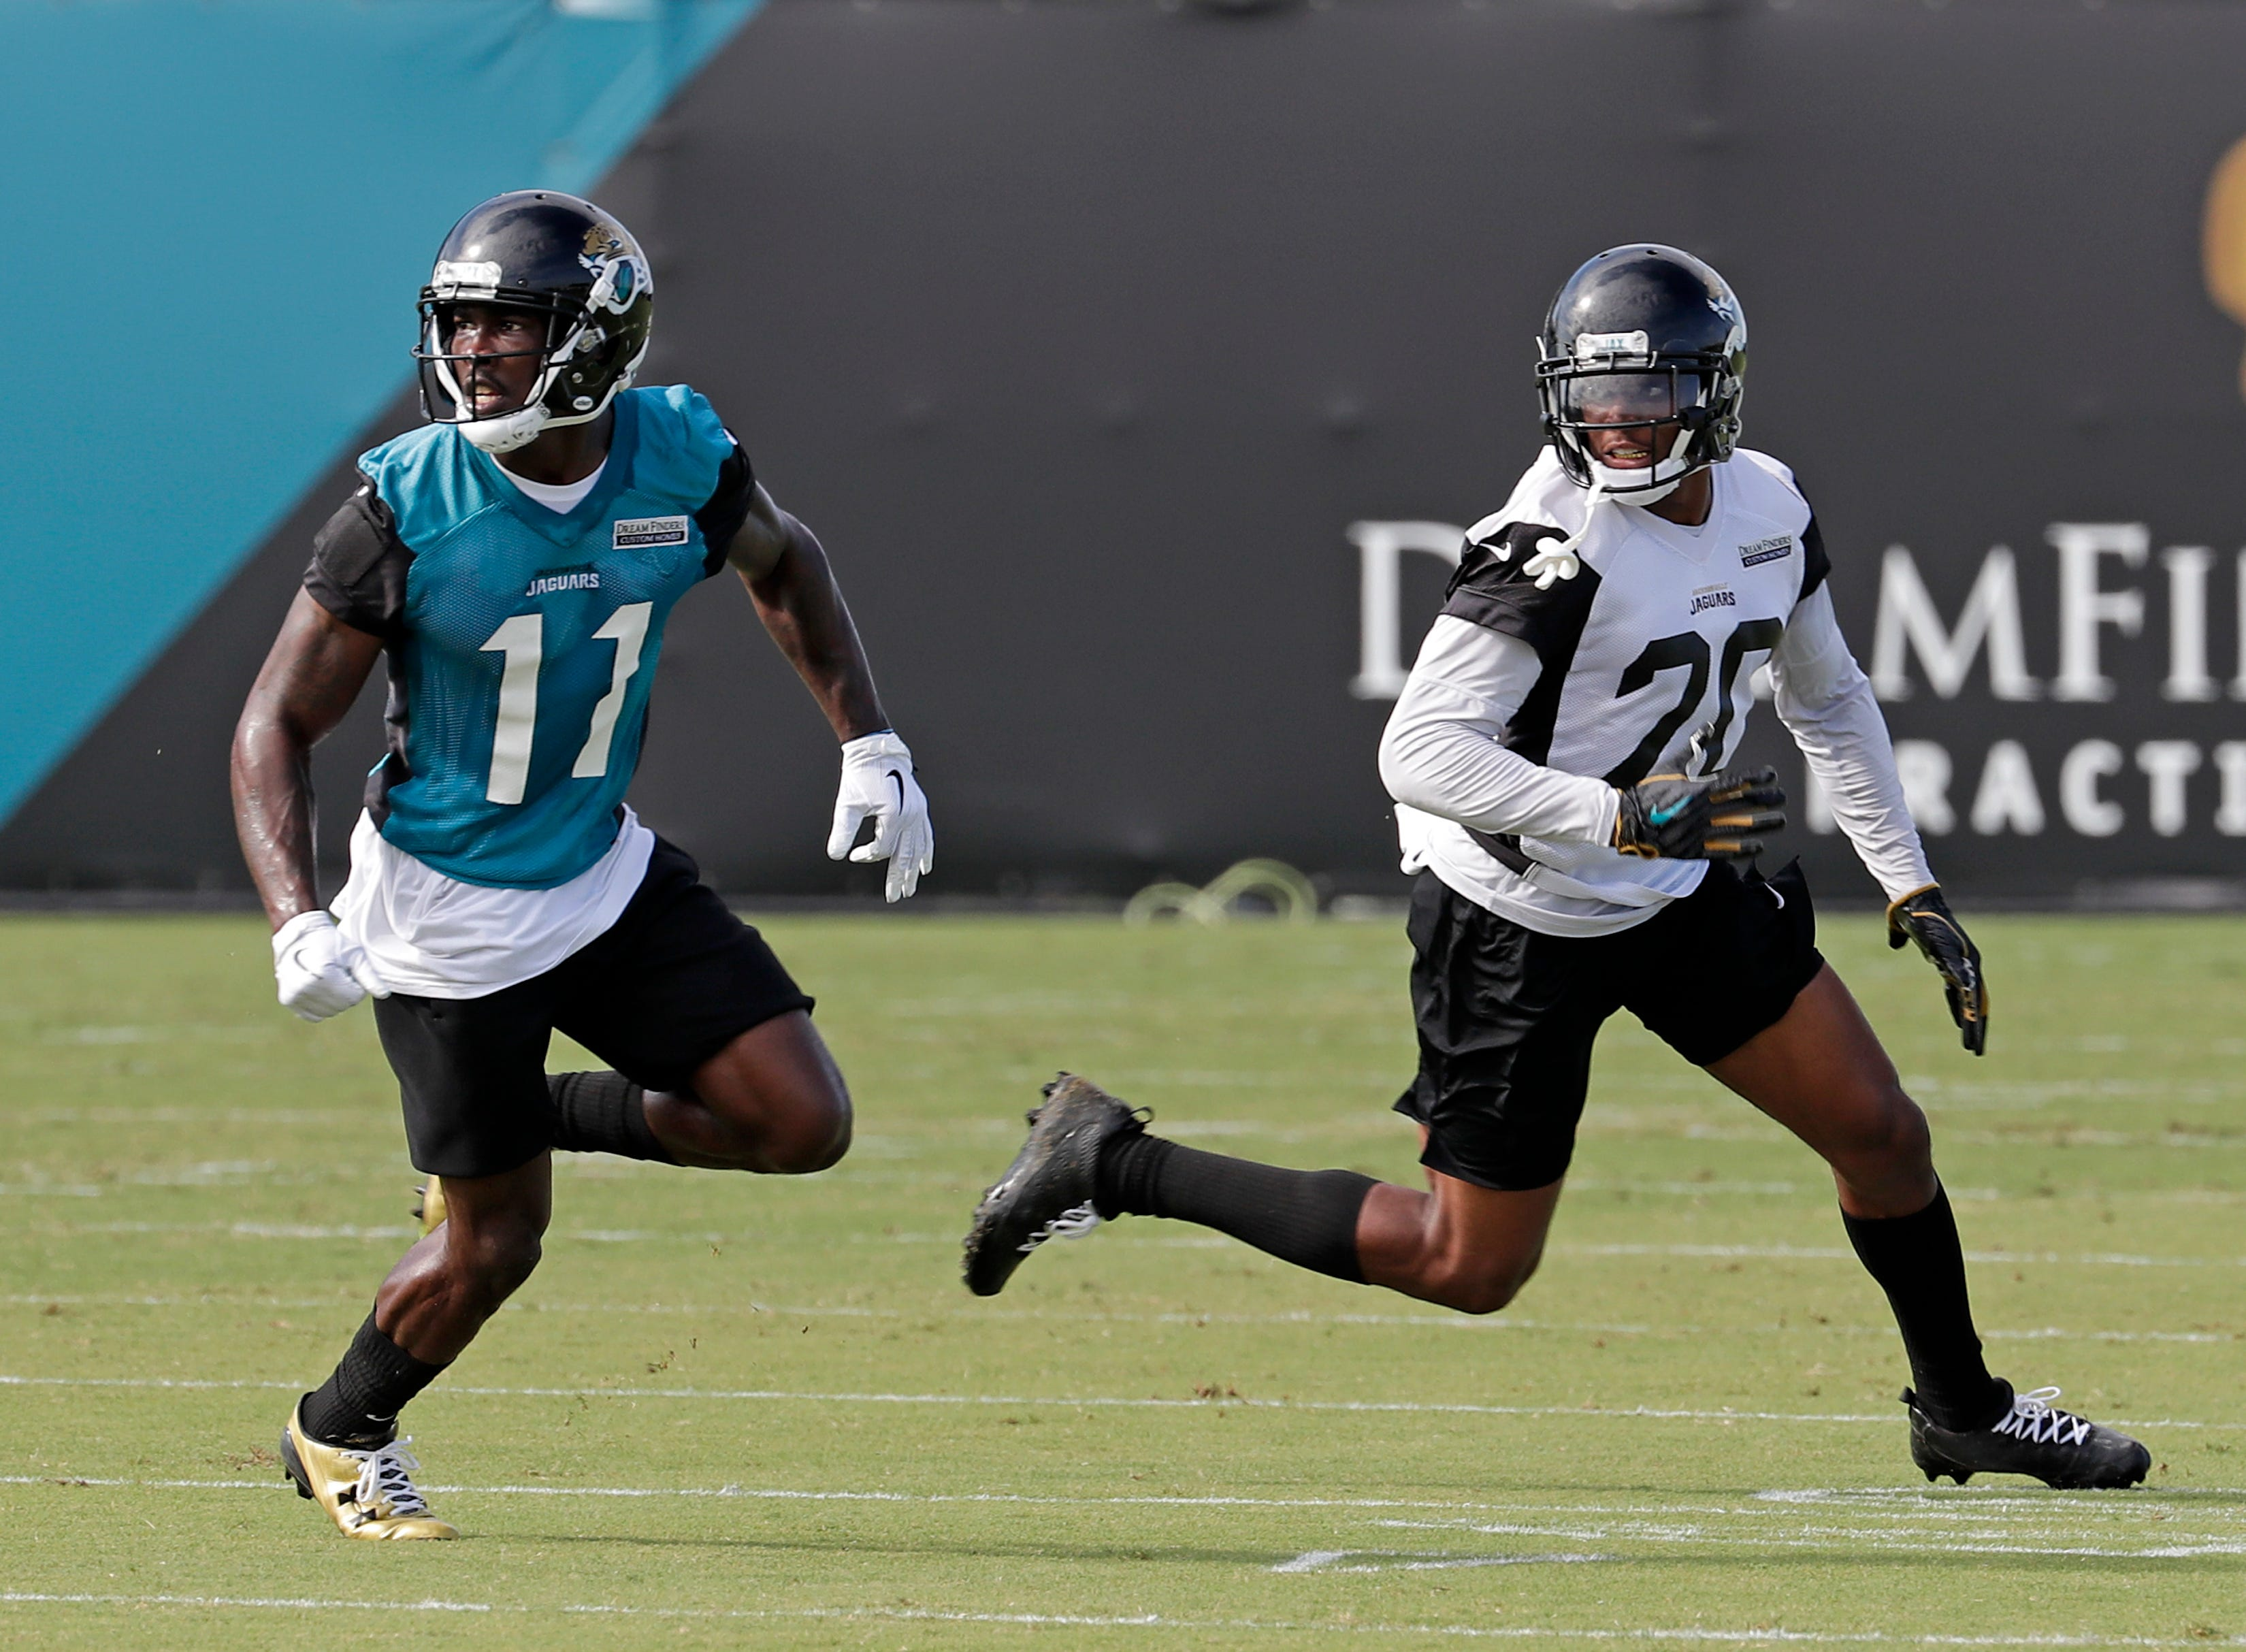 Jaguars' Ramsey has no regrets about skipping team workouts